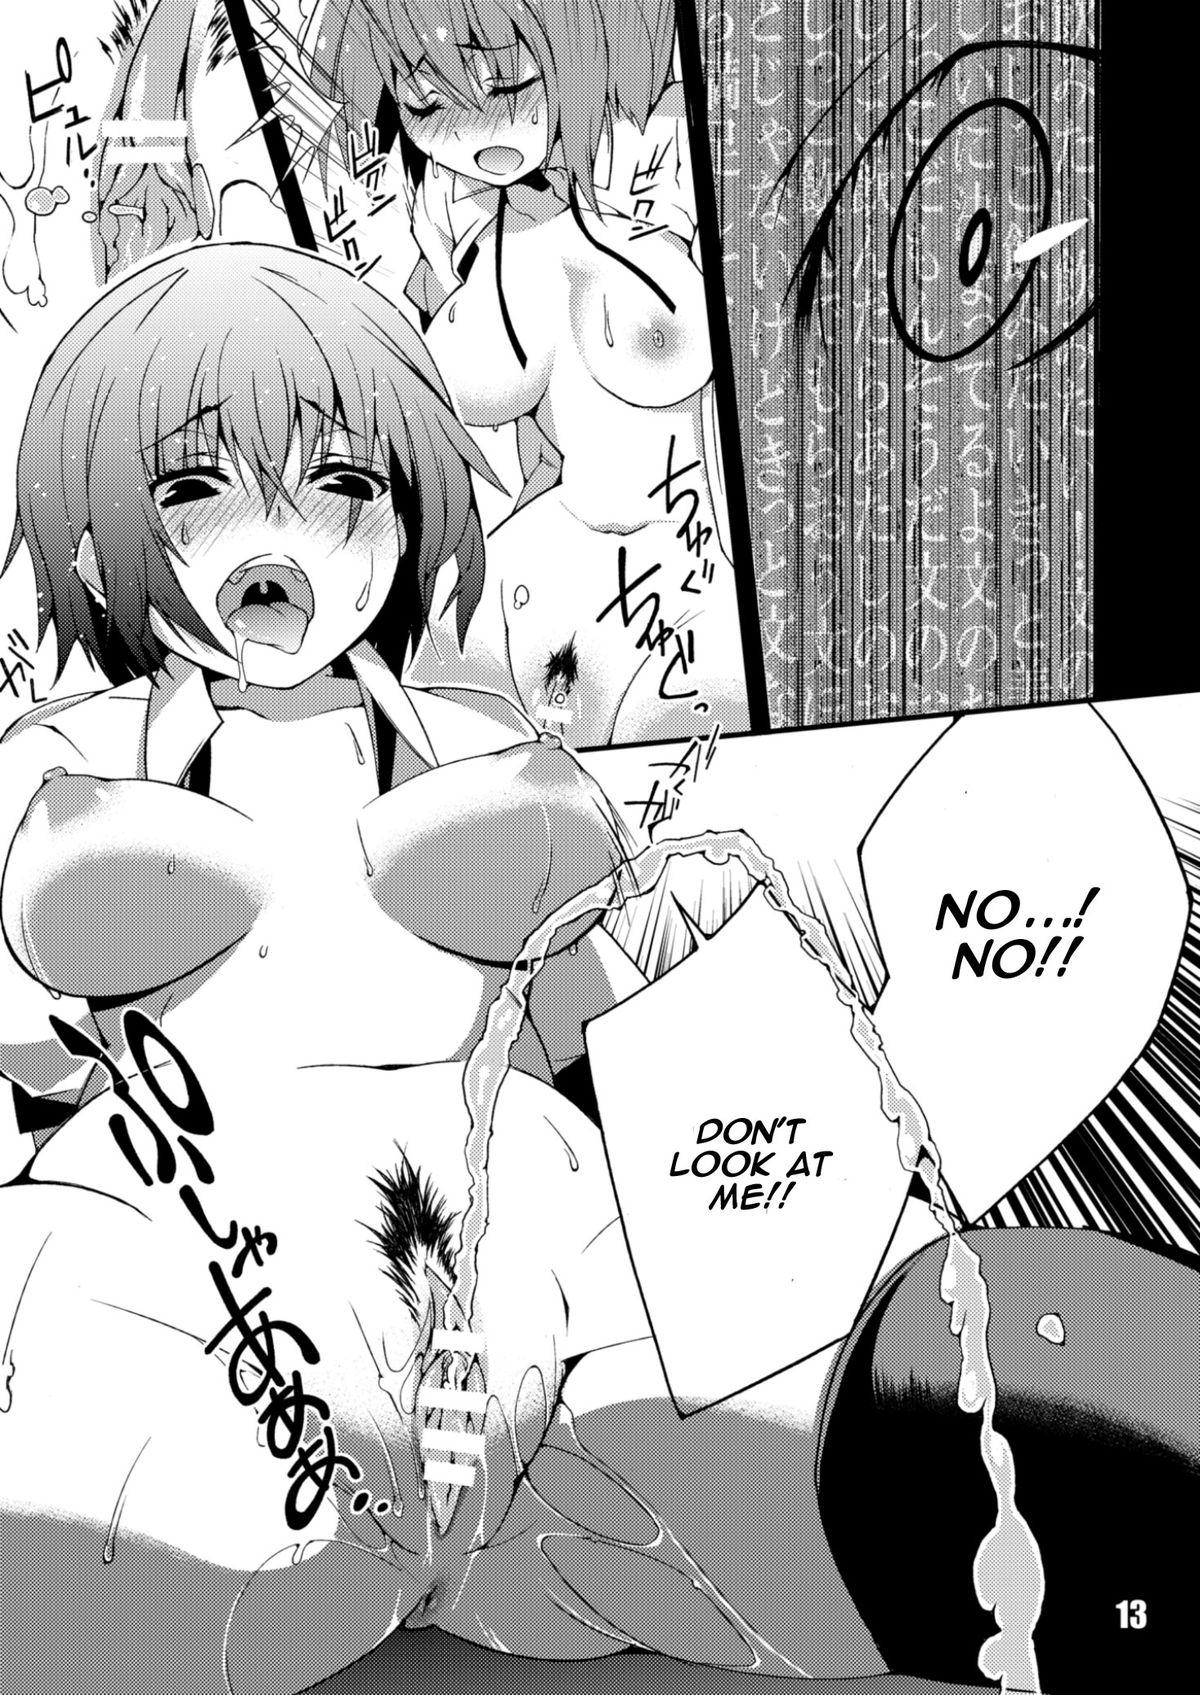 Kanojo no Ryuugi There is no such thing as light. 12